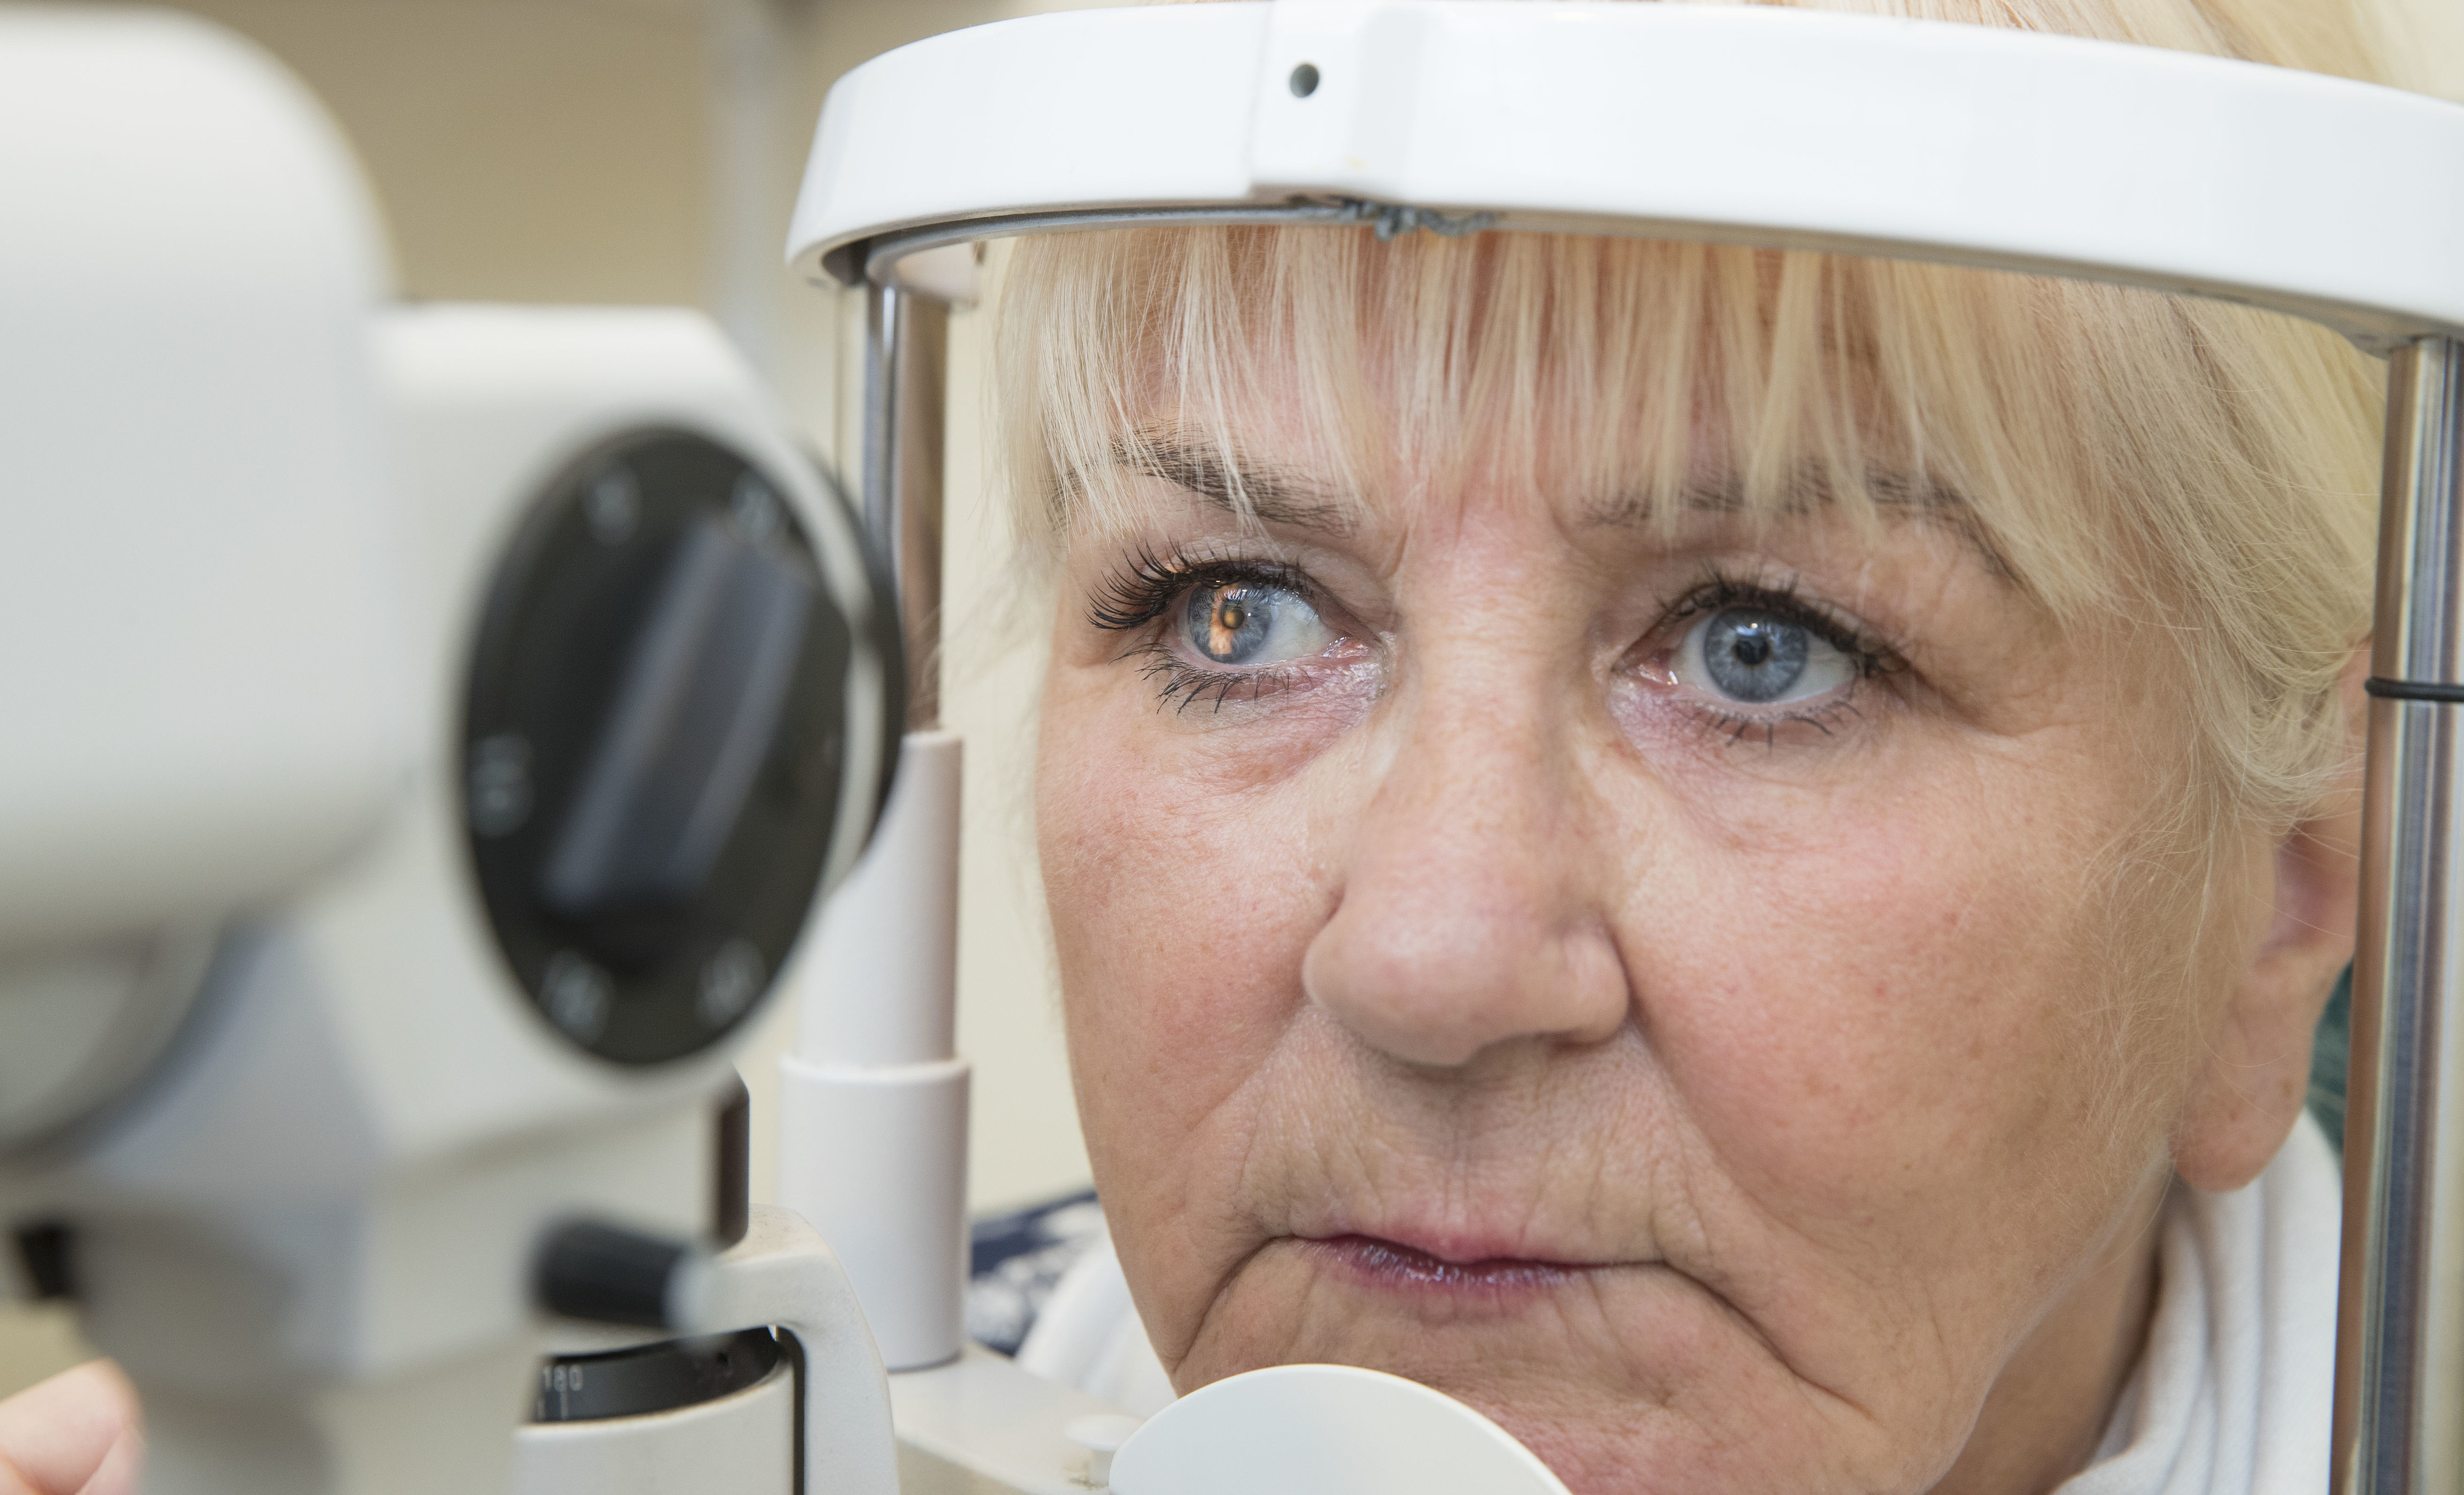 Maureen Afaty had had no idea she had suffered a stroke until her eye appointment